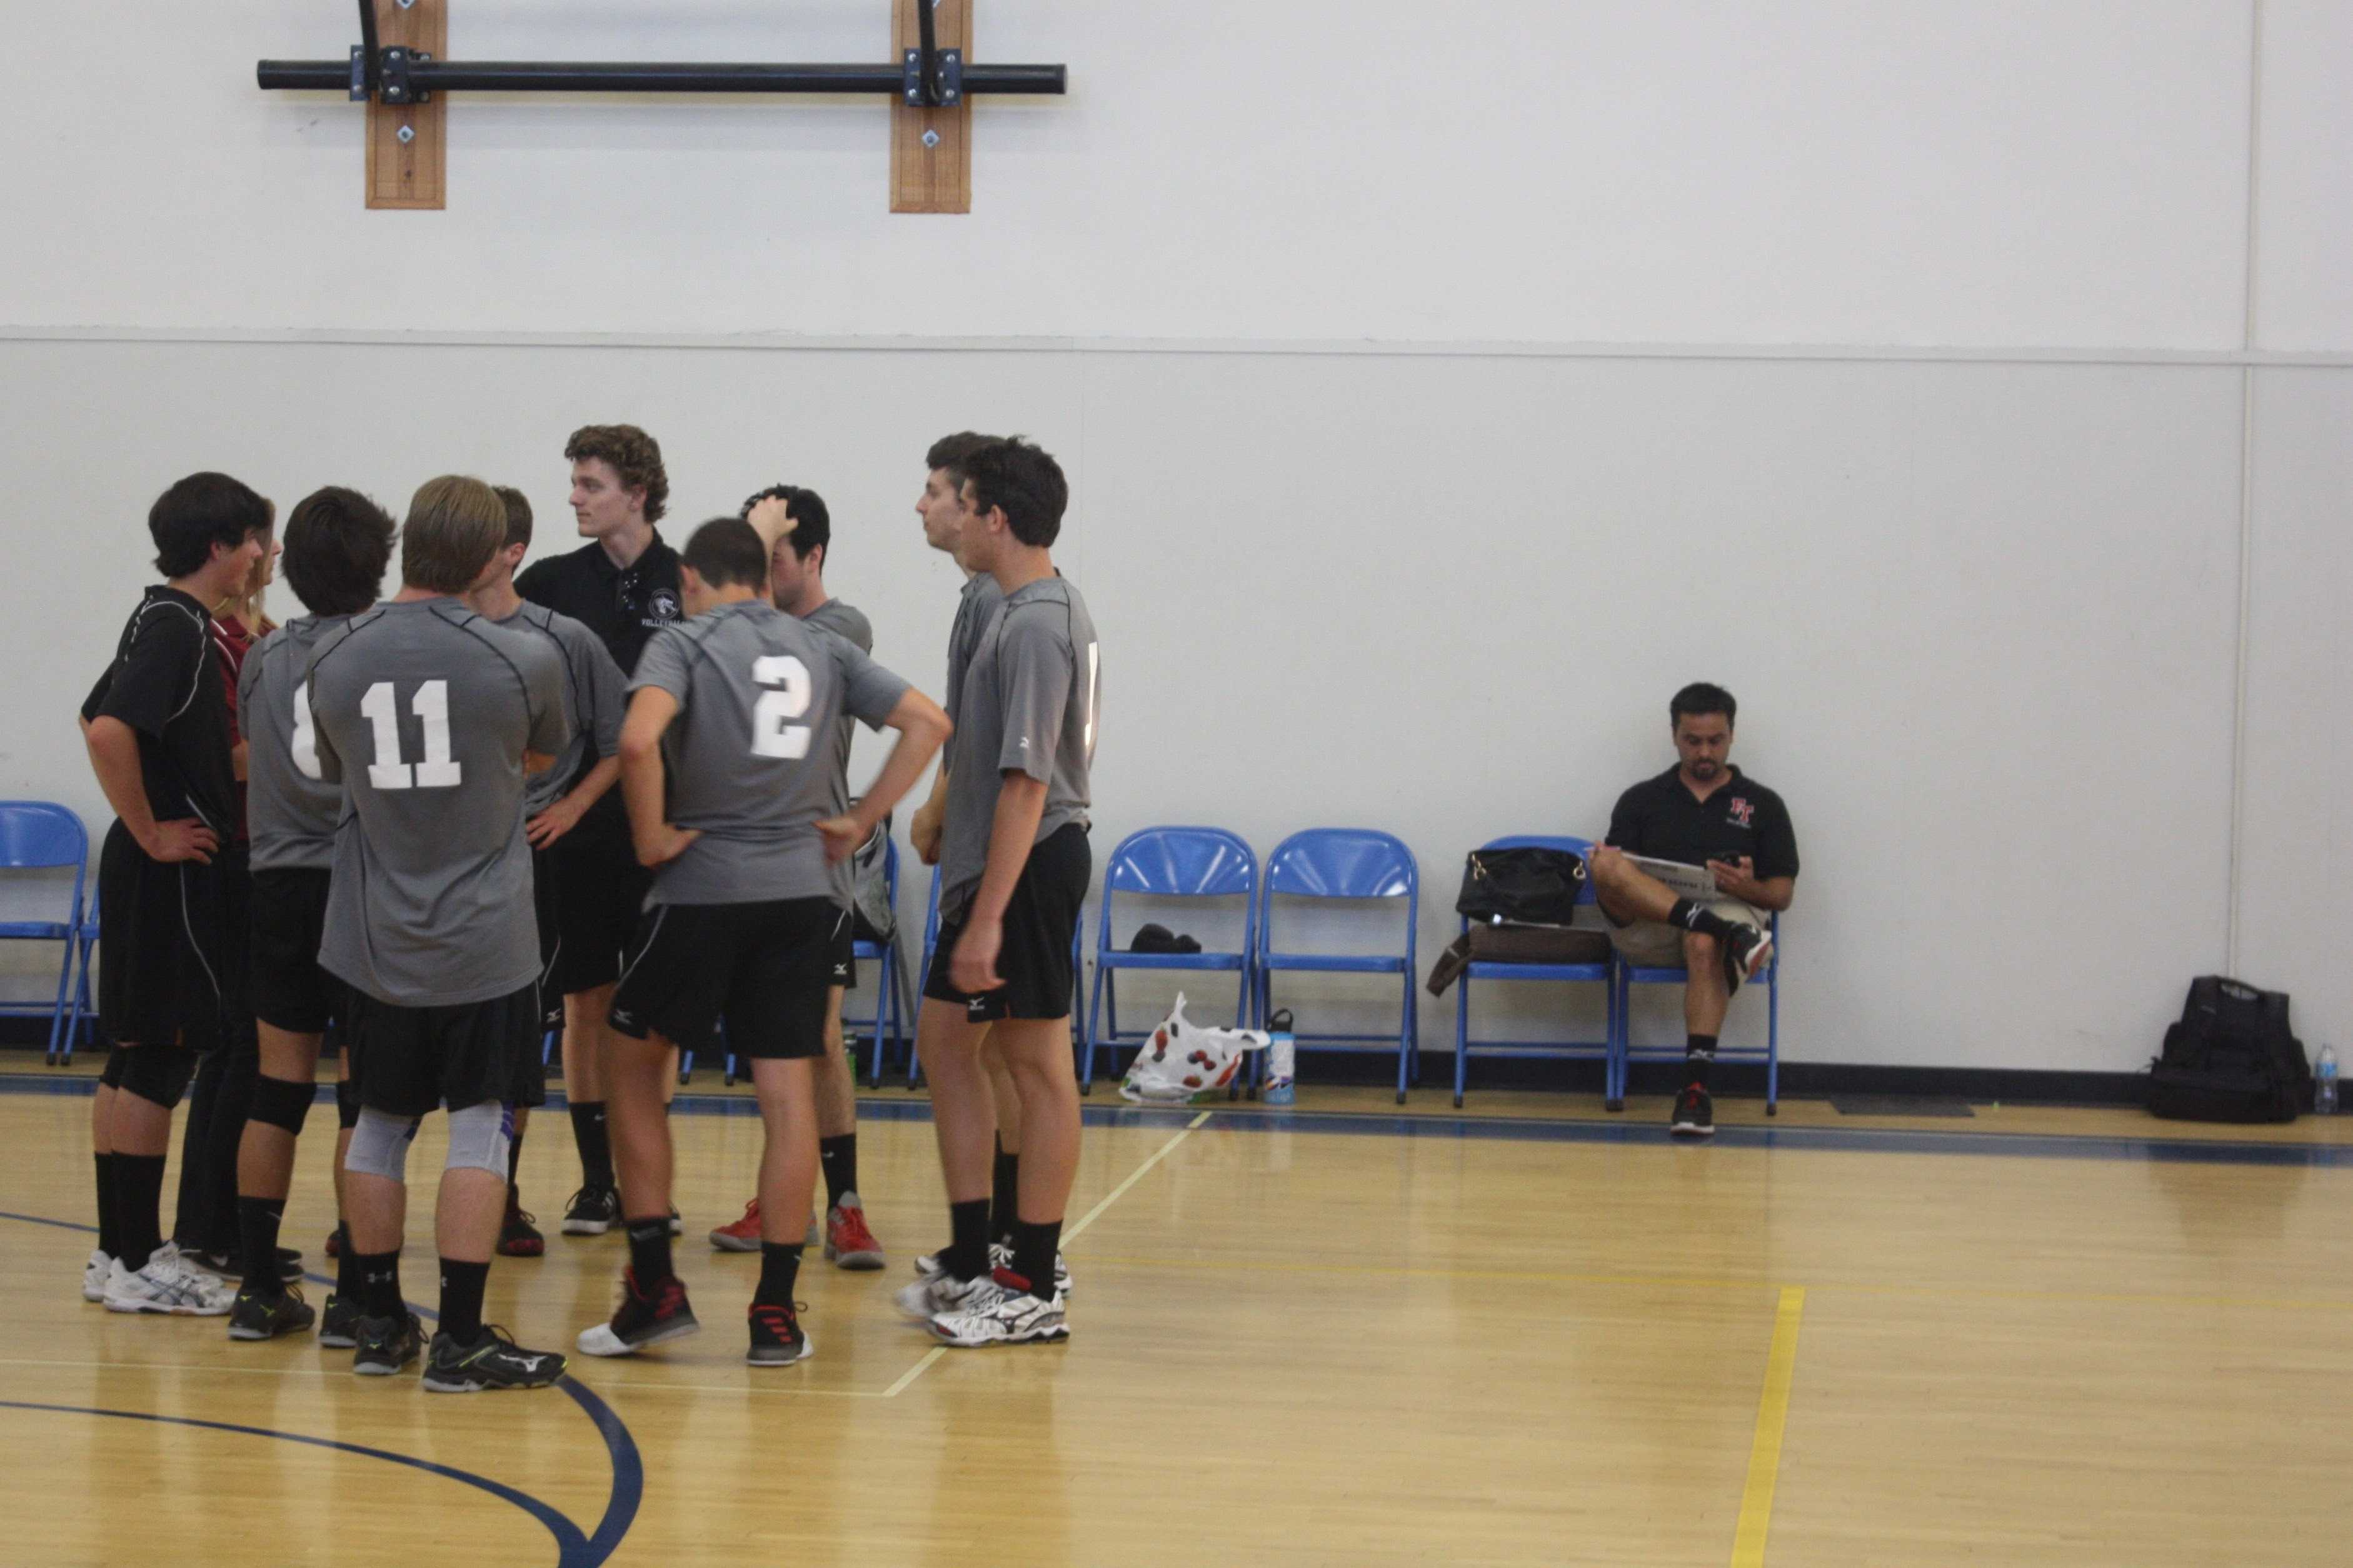 Boys' volleyball overwhelms Laguna Blanca in non-league match